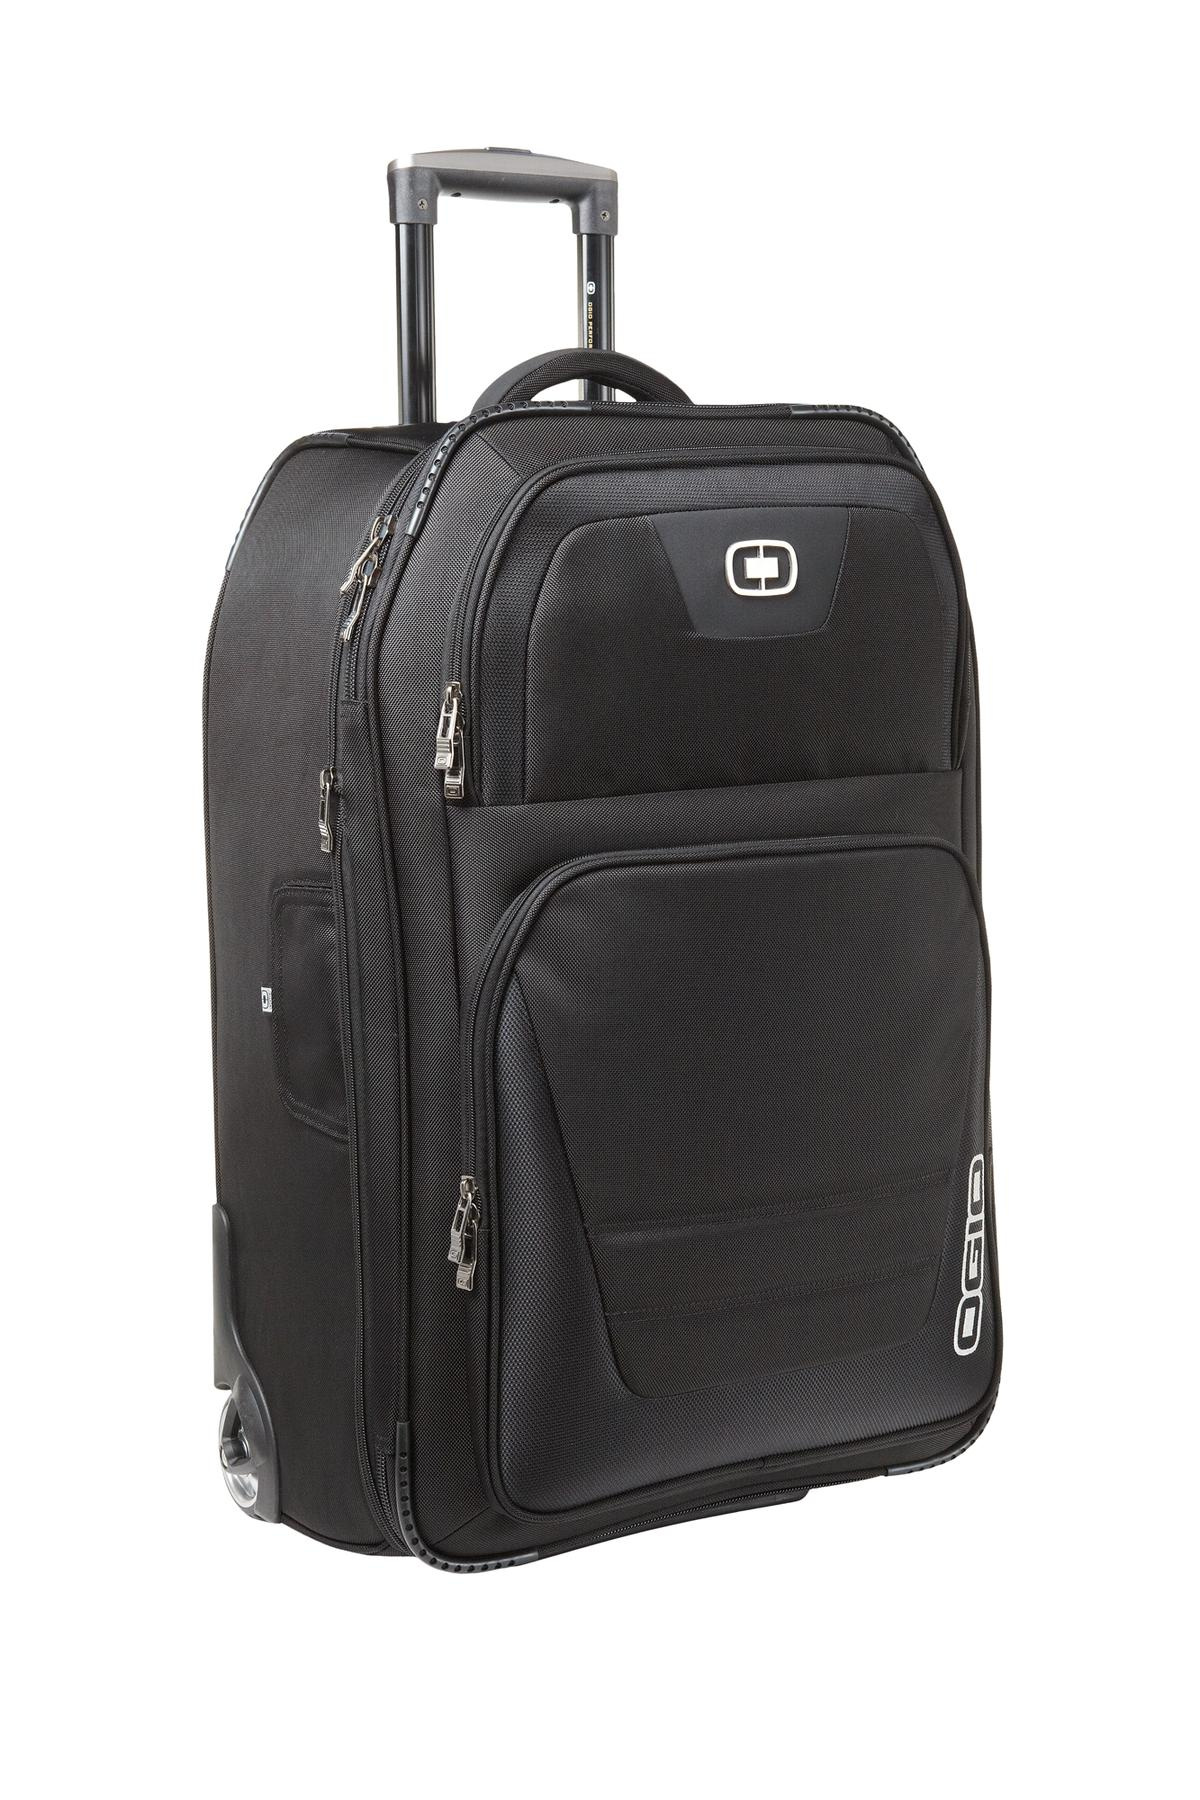 OGIO ®  - Kickstart 26 Travel Bag. 413008